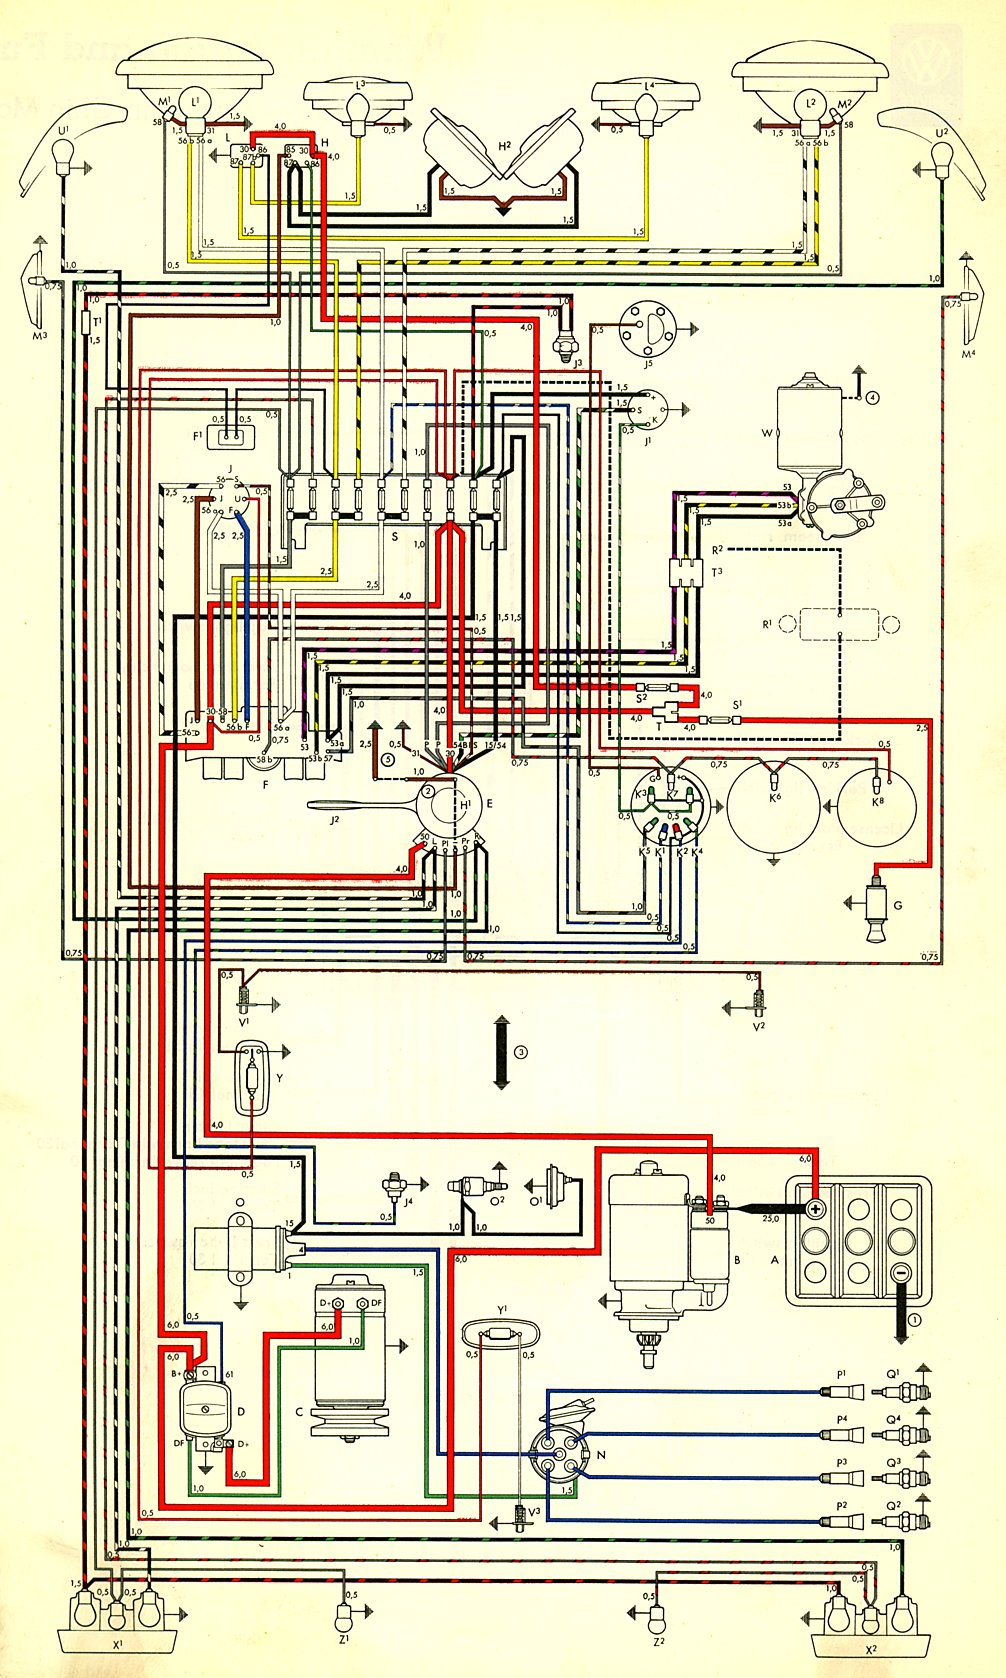 71 Vw Type 3 Wiring Diagram Opinions About Harness Types Thesamba Com Diagrams Rh 1969 Bus